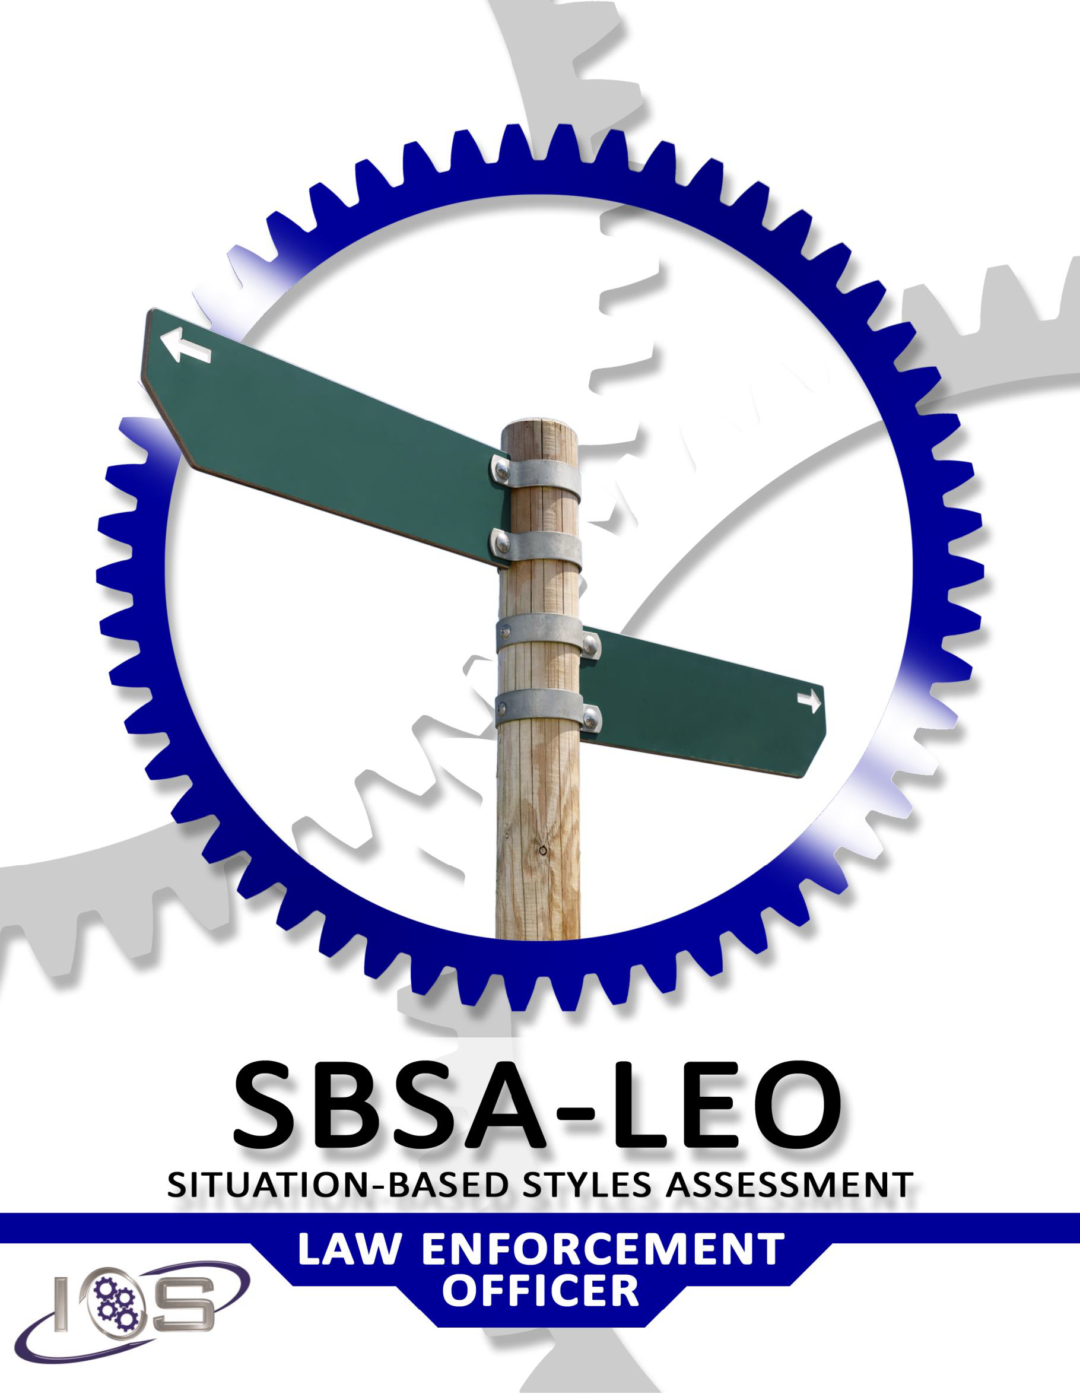 Situational-Based Styles Assessment for Law Enforcement – SBSA-LE